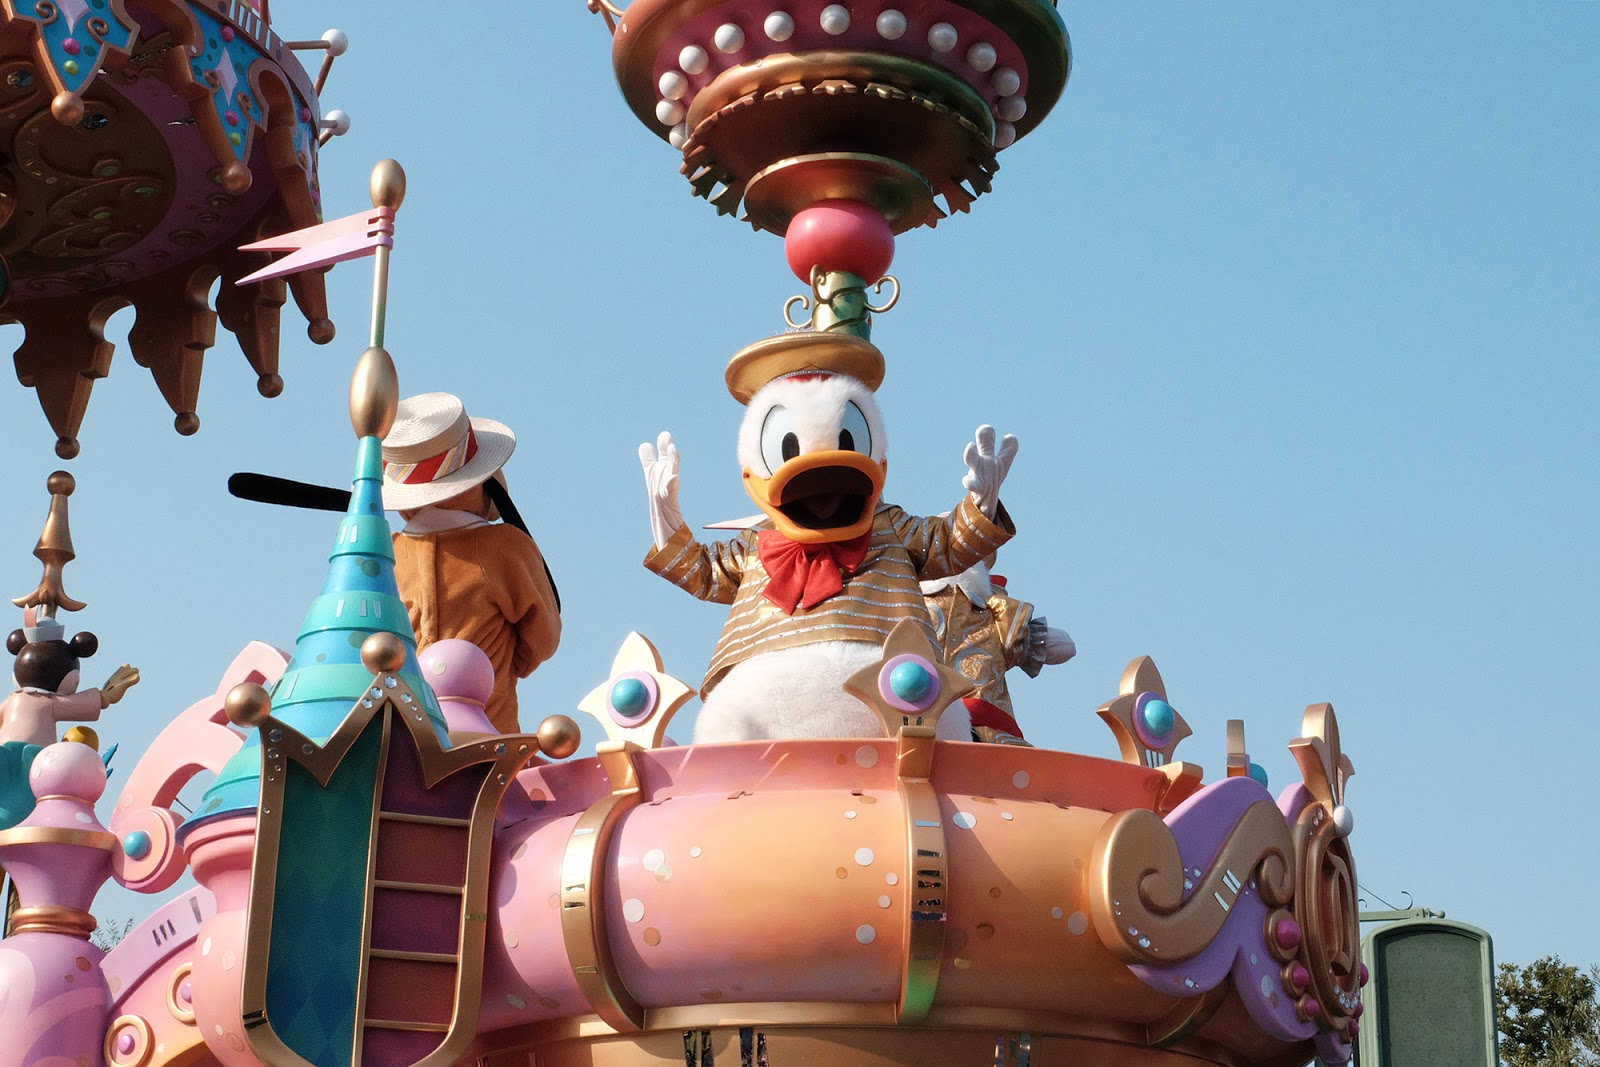 10 Tips You Should Know Before Visiting Tokyo DisneySea Disneyland | www.bigdreamerblog.com